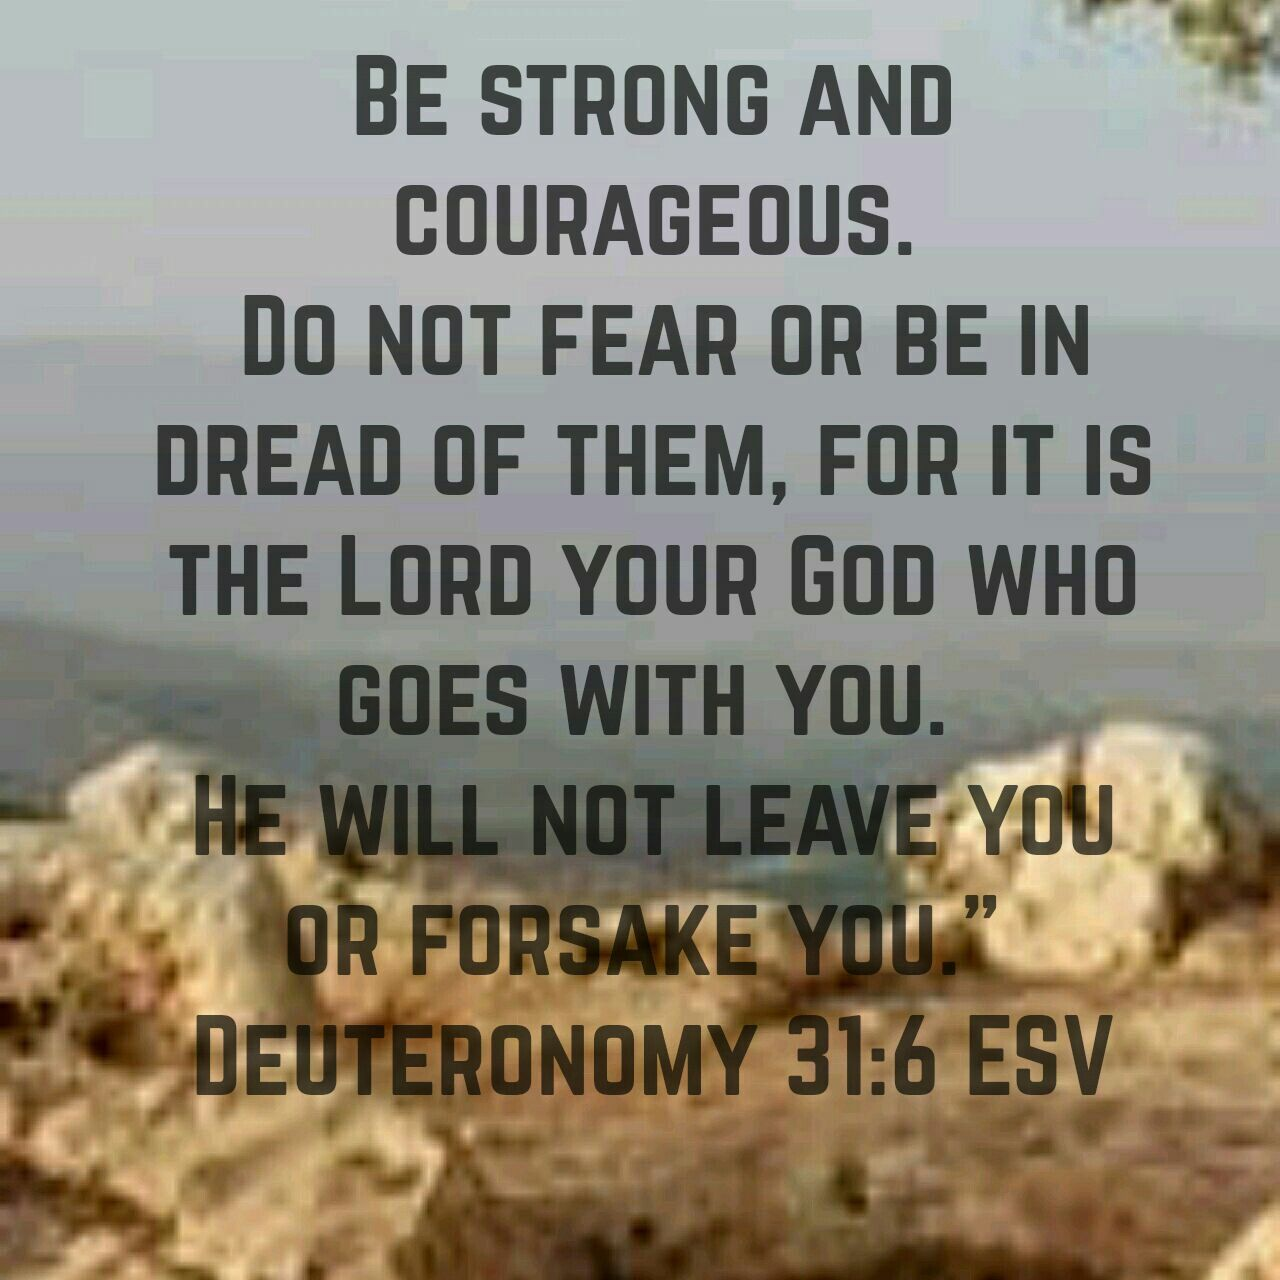 Be strong and courageous. He will never leave us. Bible quote. Trust in God   Inspirational scripture, Inspirational words, Words of wisdom